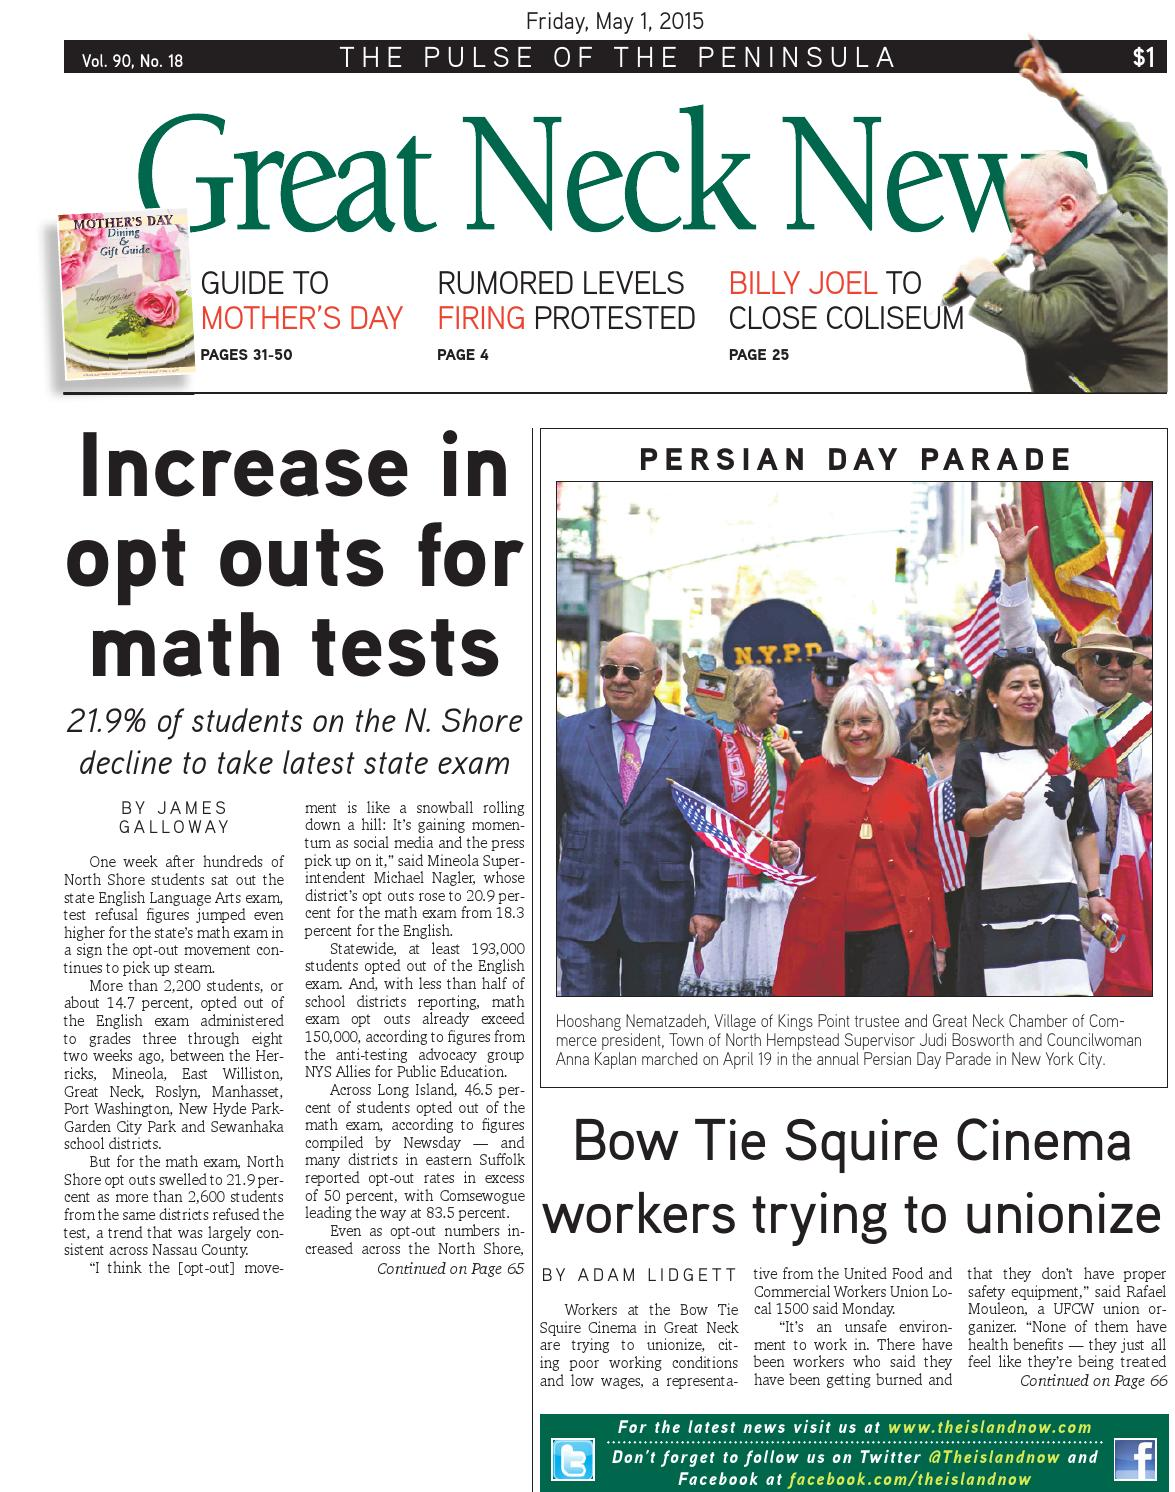 Great Neck News 5.1.15 by The Island Now - issuu